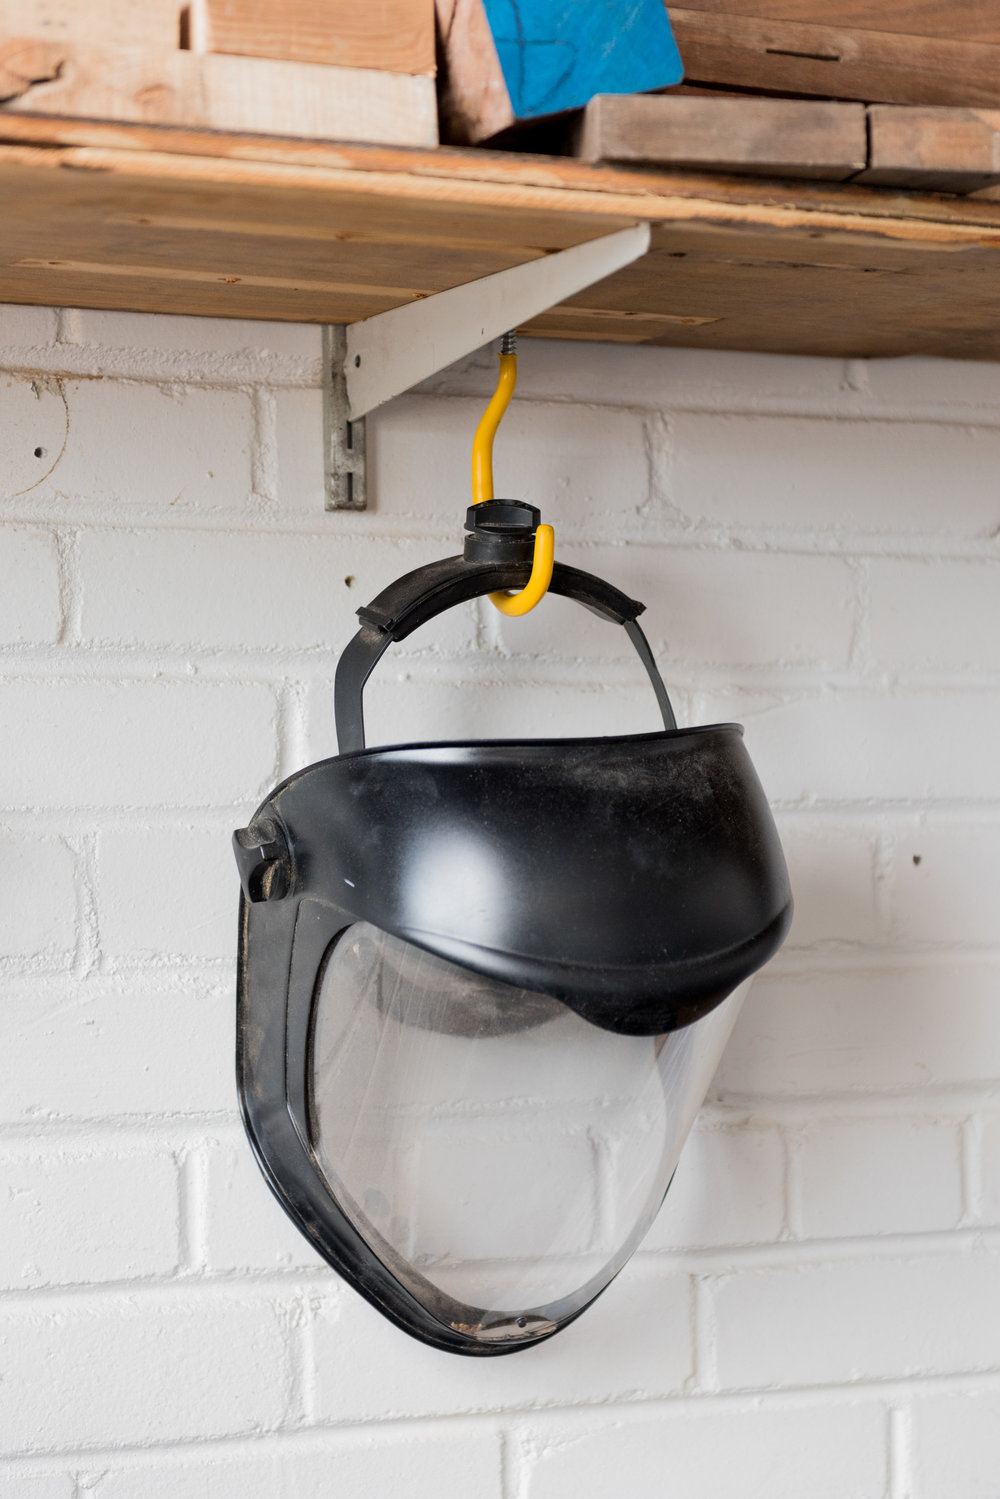 The face shield. This is very important when you are turning wood at 3000 RPM